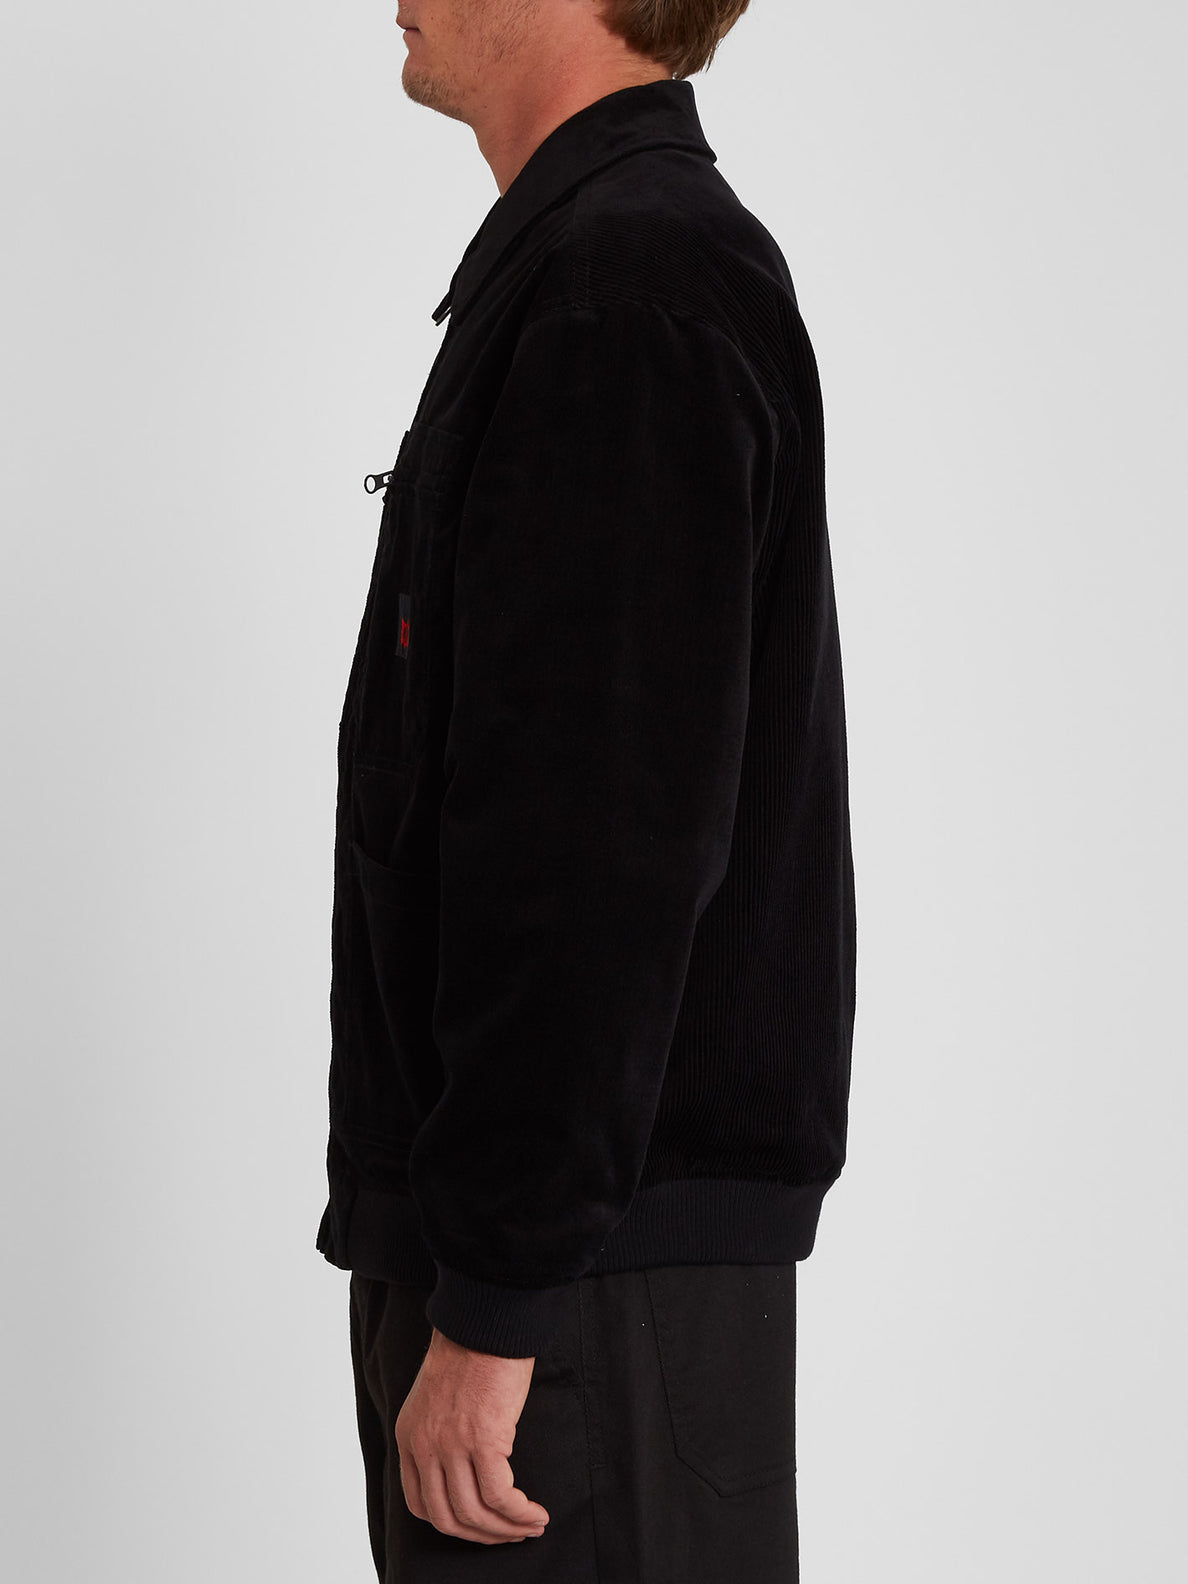 Averted Visions Jacket - BLACK (A1642007_BLK) [1]